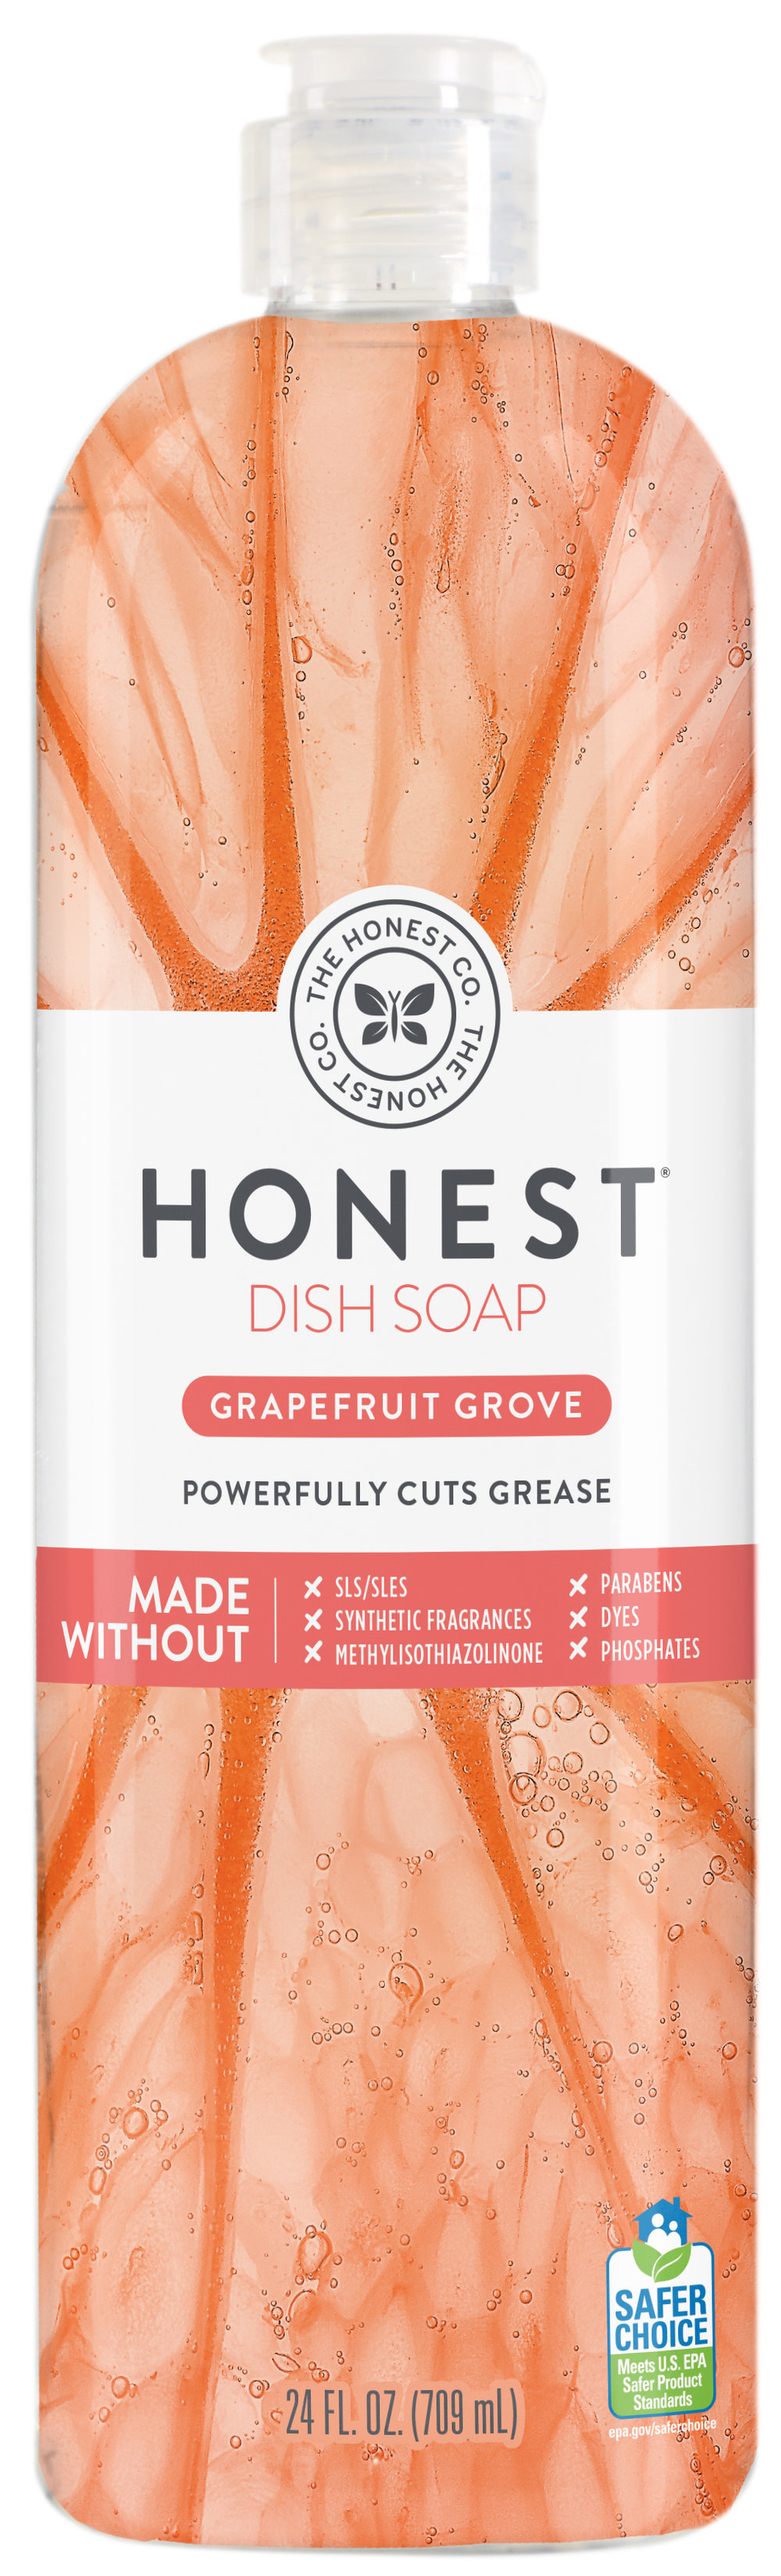 DishSoap_24floz_Grapefruit.jpg